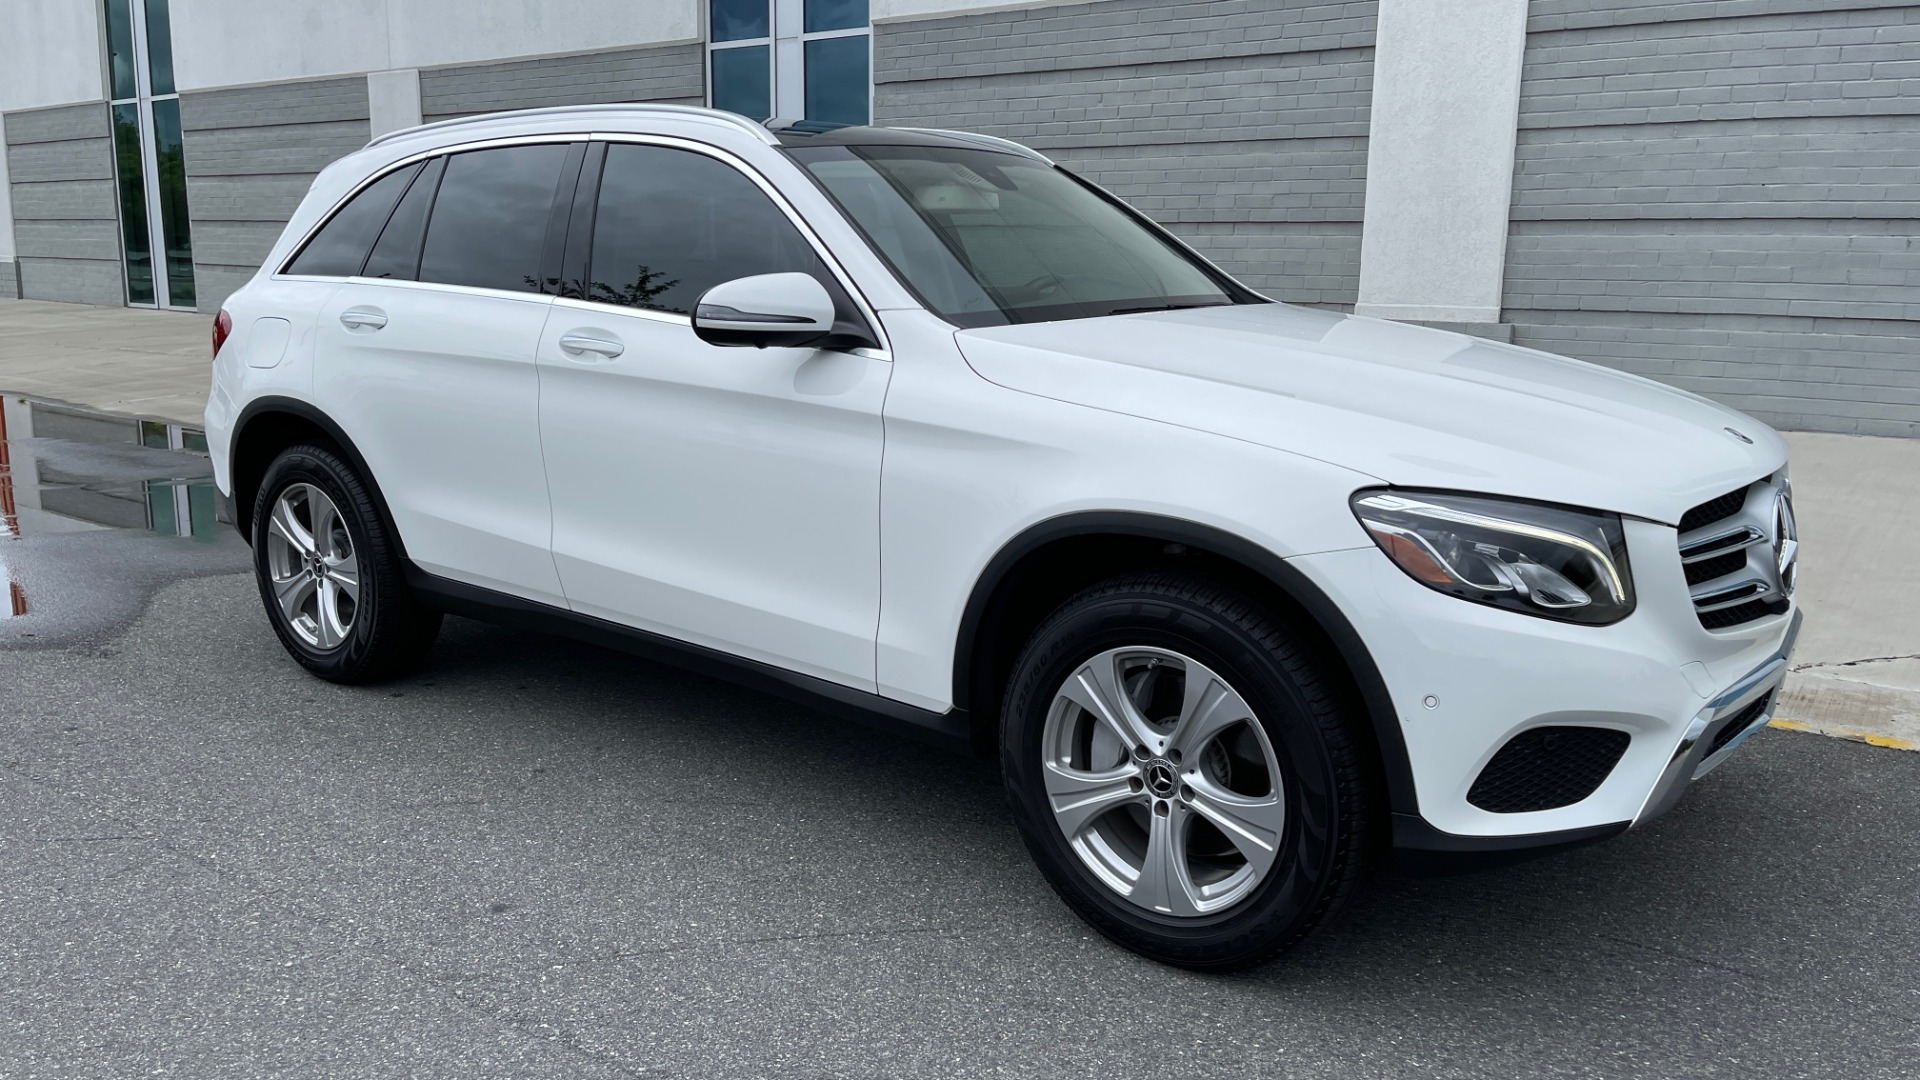 Used 2018 Mercedes-Benz GLC 300 PREMIUM / PANO-ROOF / HTD STS / PARK ASST / REARVIEW for sale $34,613 at Formula Imports in Charlotte NC 28227 6